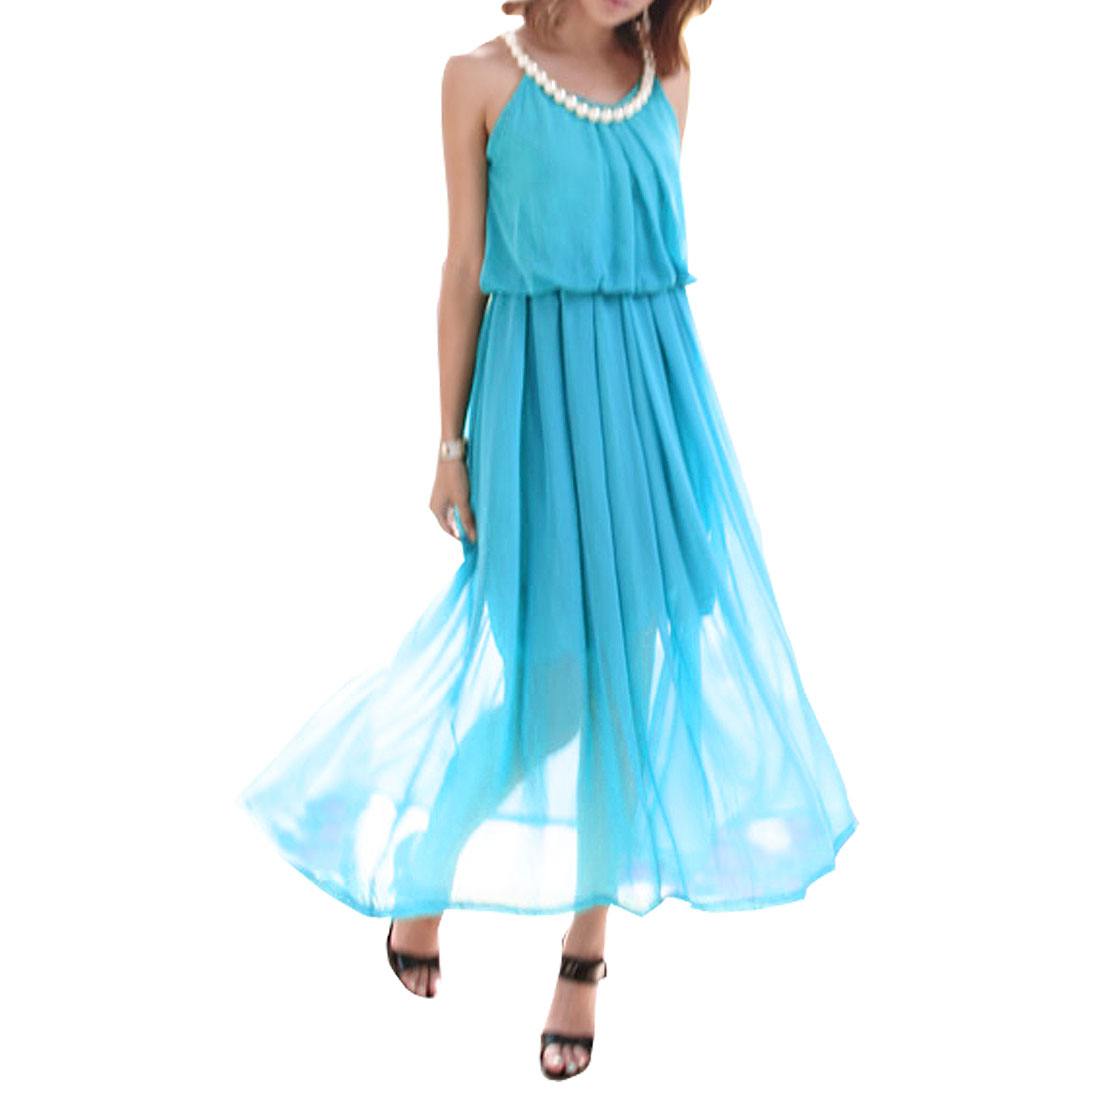 Ladies Blue Summer Plastic Pearl Detail Full Length Cocktail Chiffon Dress S